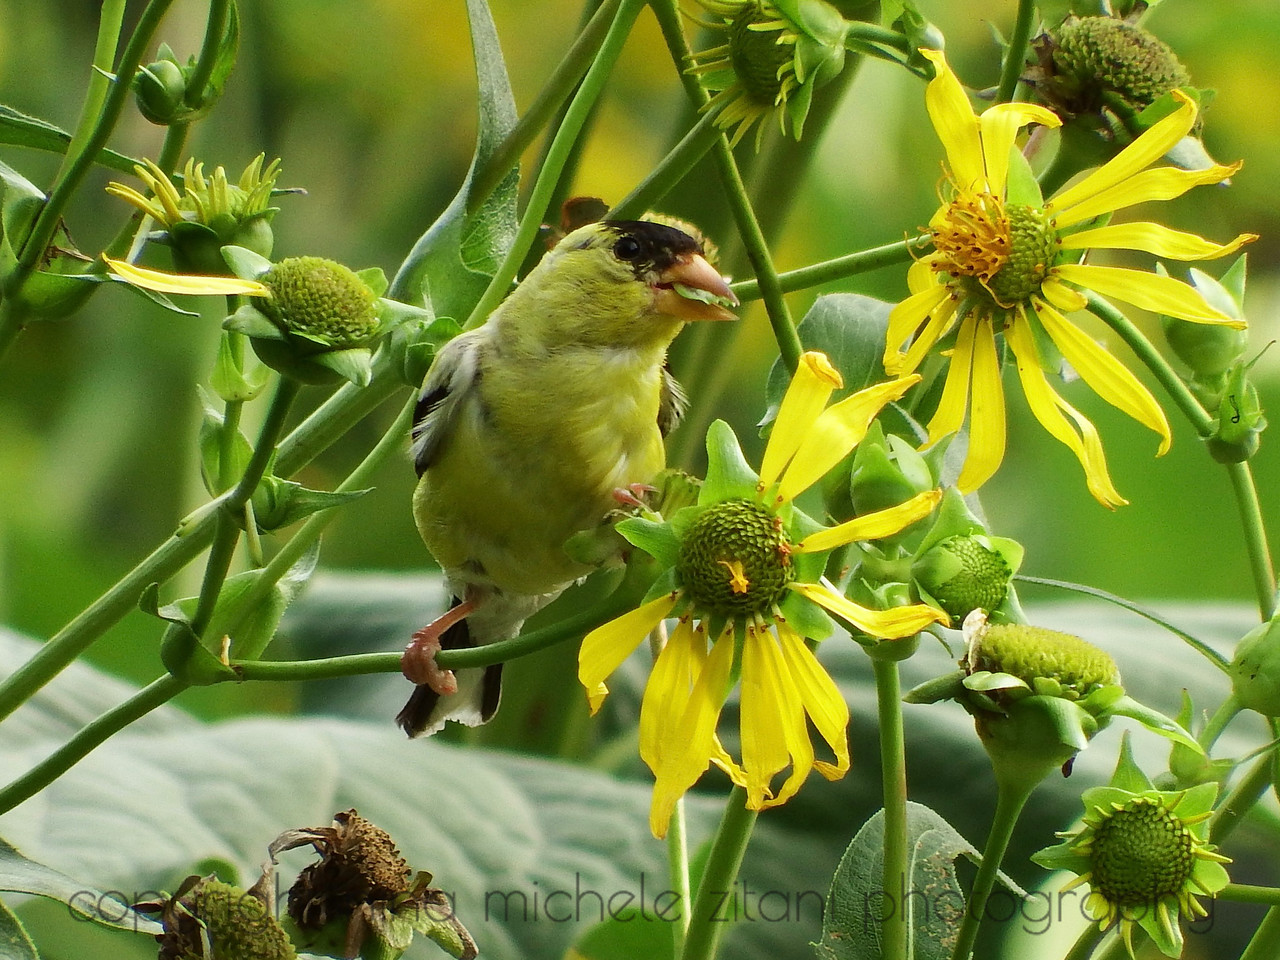 American Goldfinch Eating Cup Plant Seeds